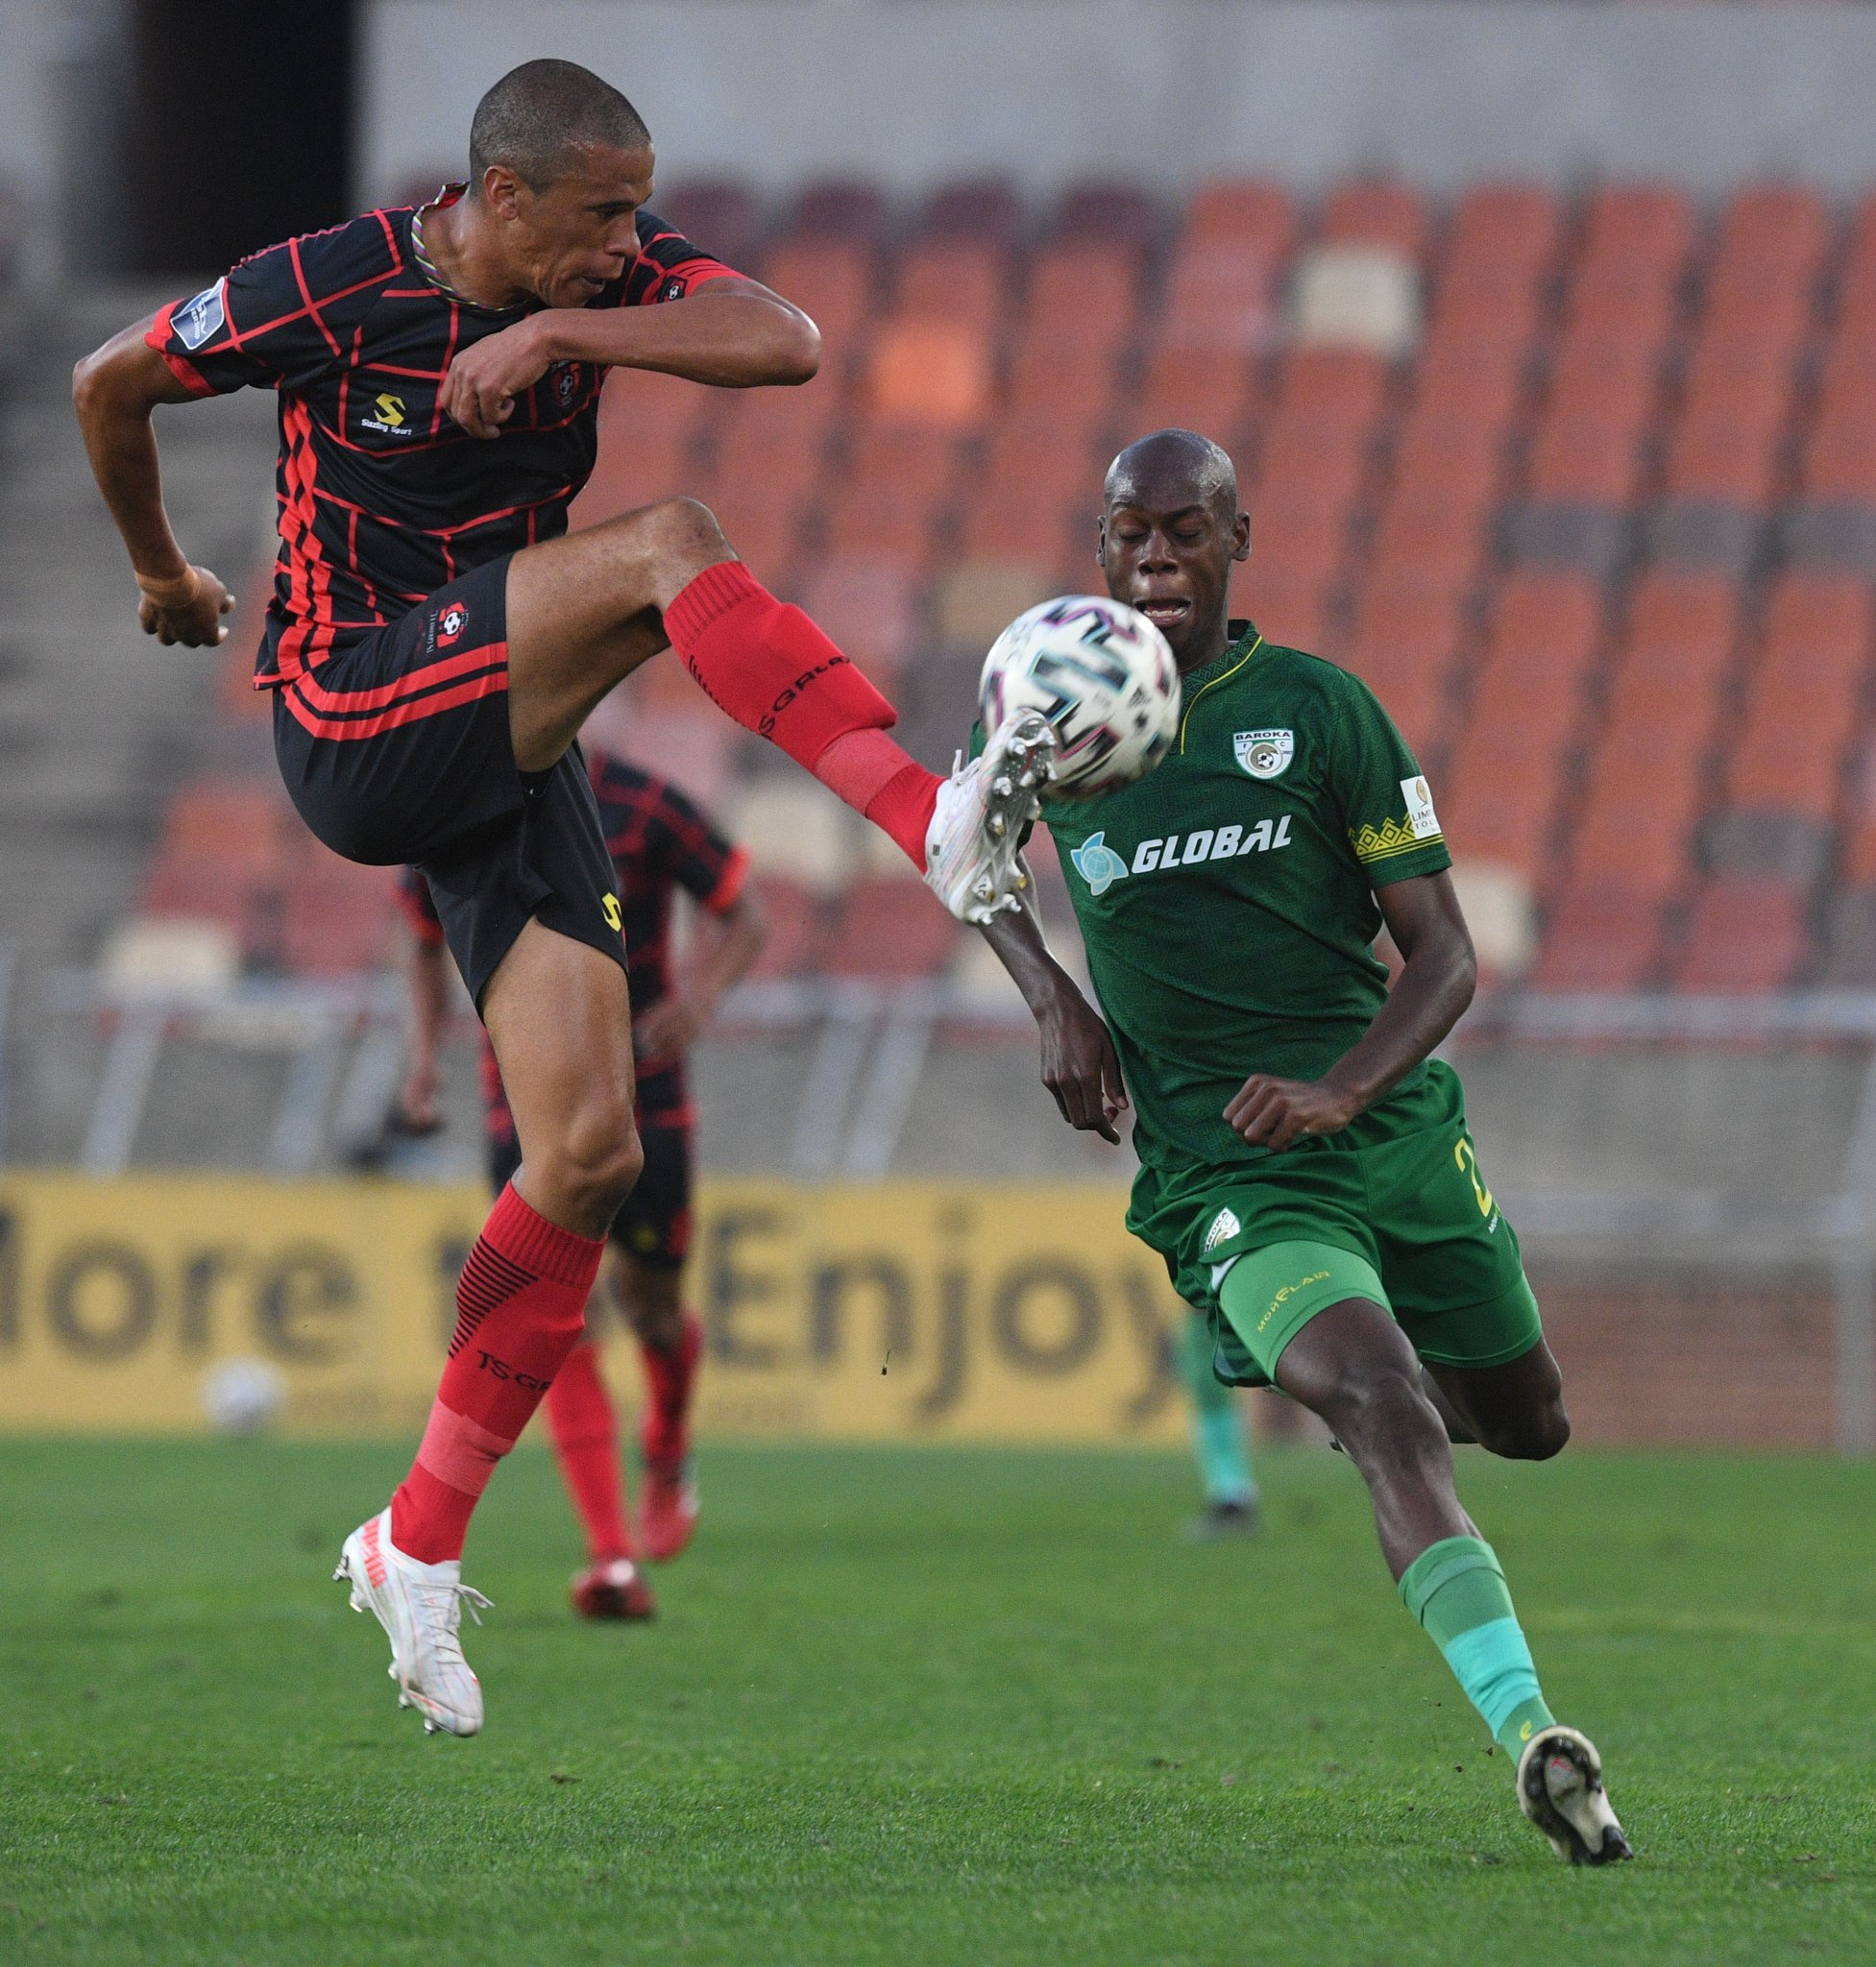 TS GALAXY BEAT BAROKA AND MOVE BACK INTO TOP EIGHT